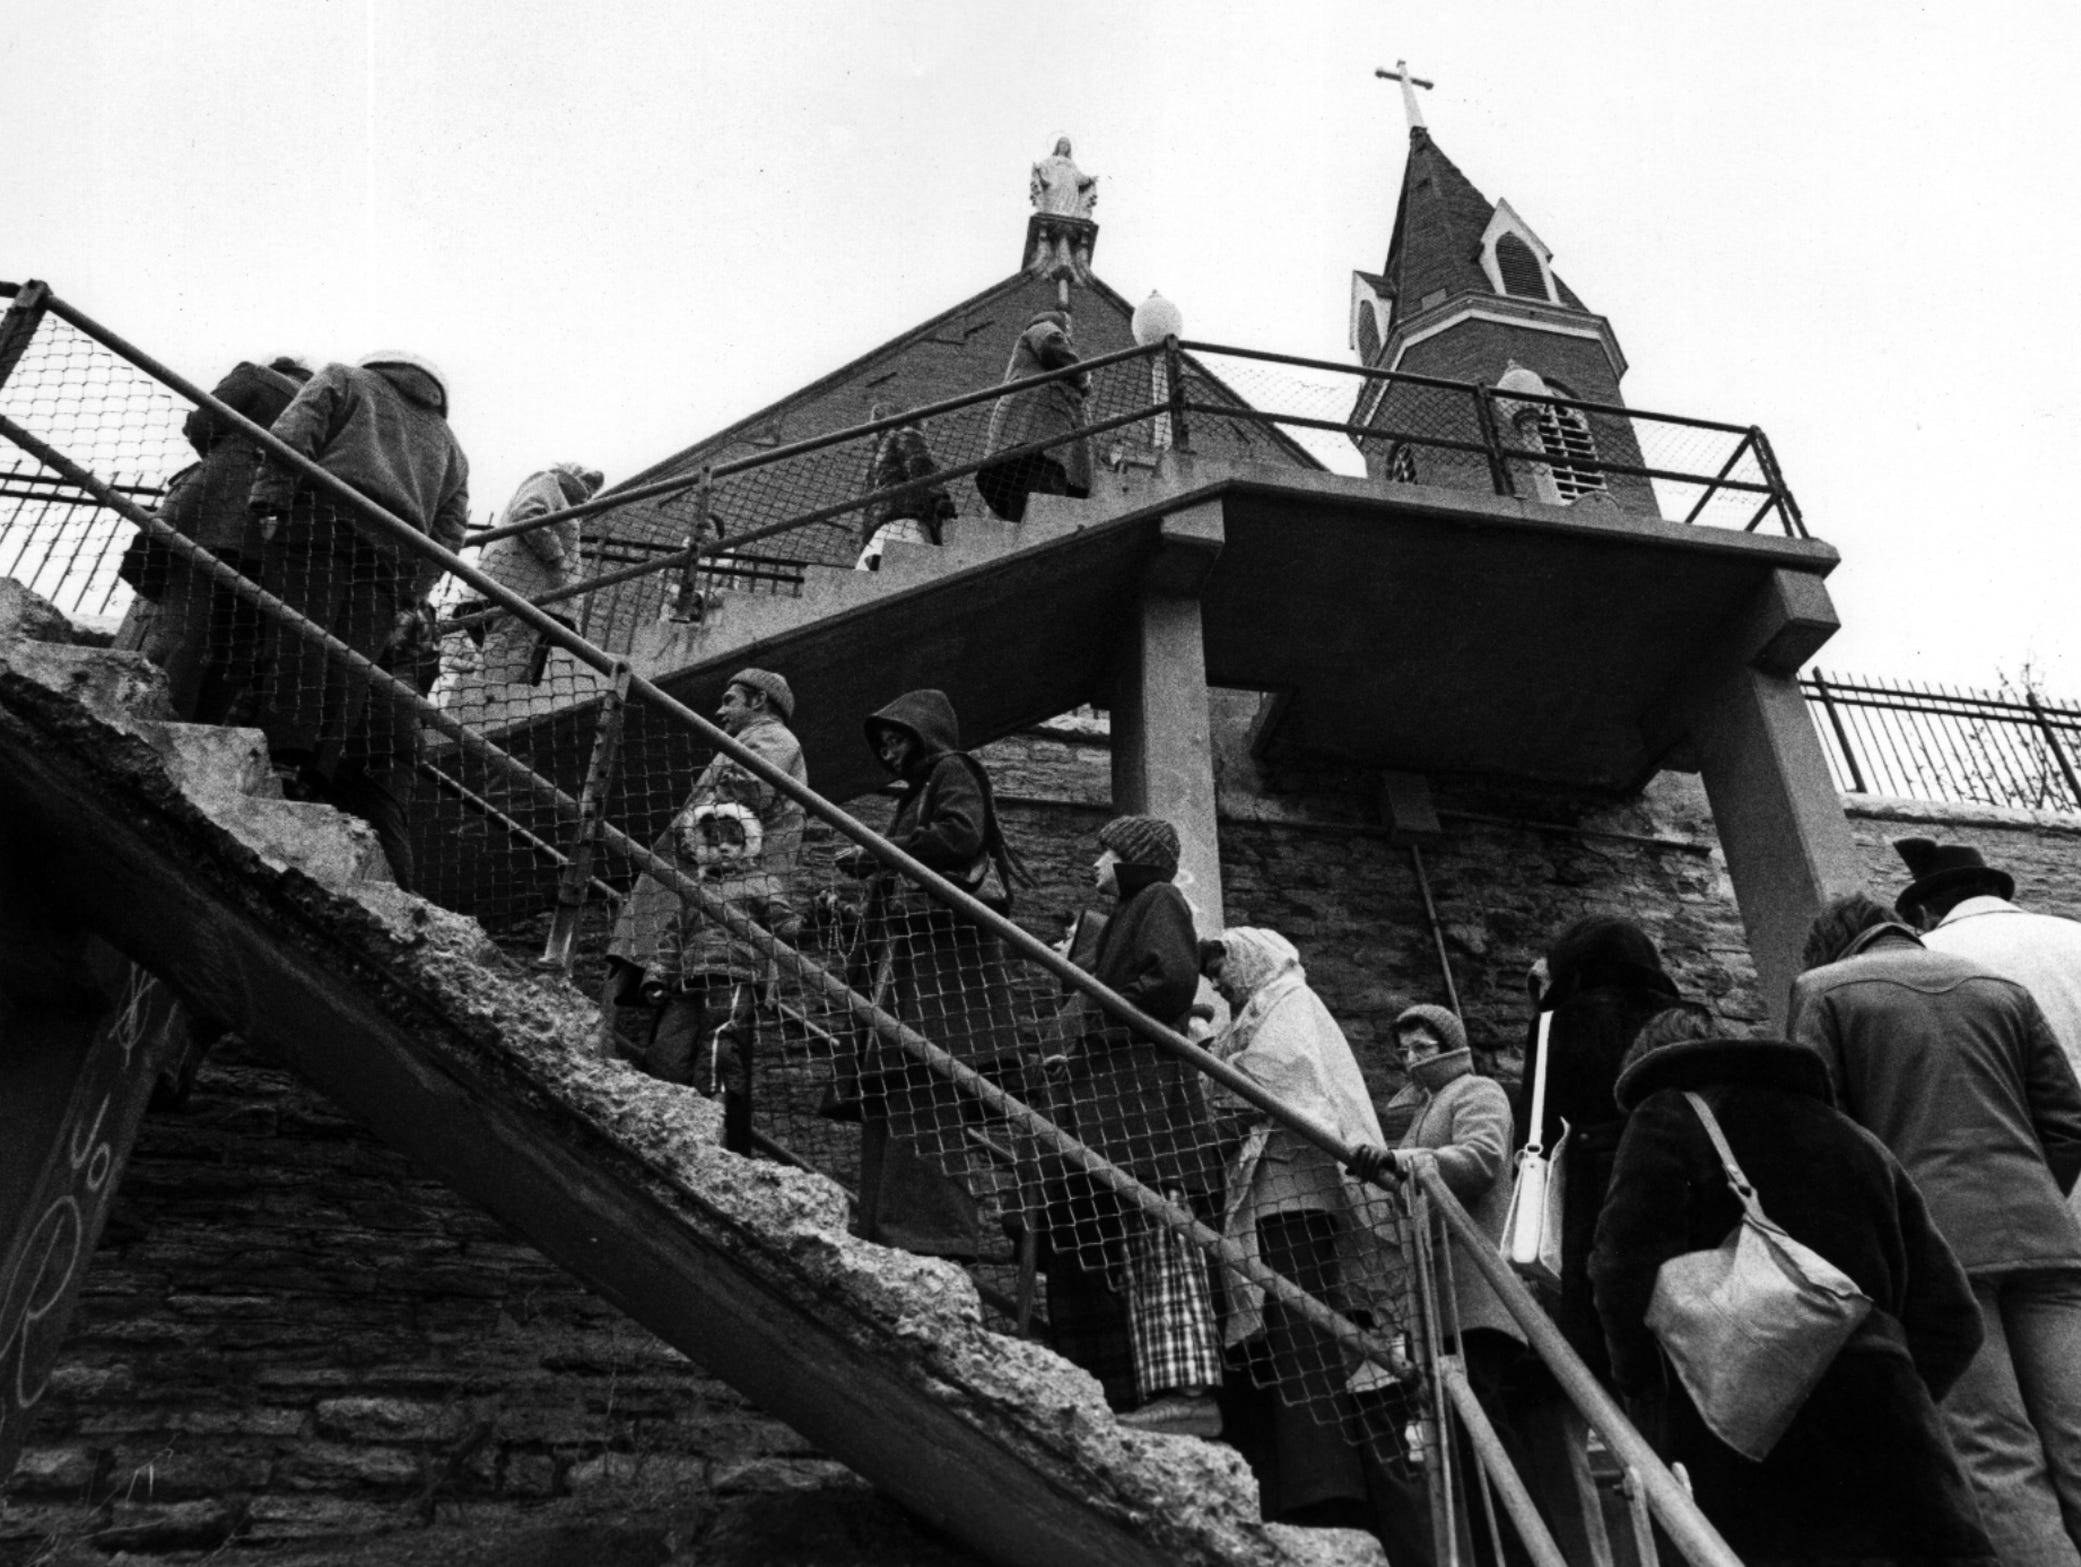 1978: People pray the steps at Immaculata on Good Friday.